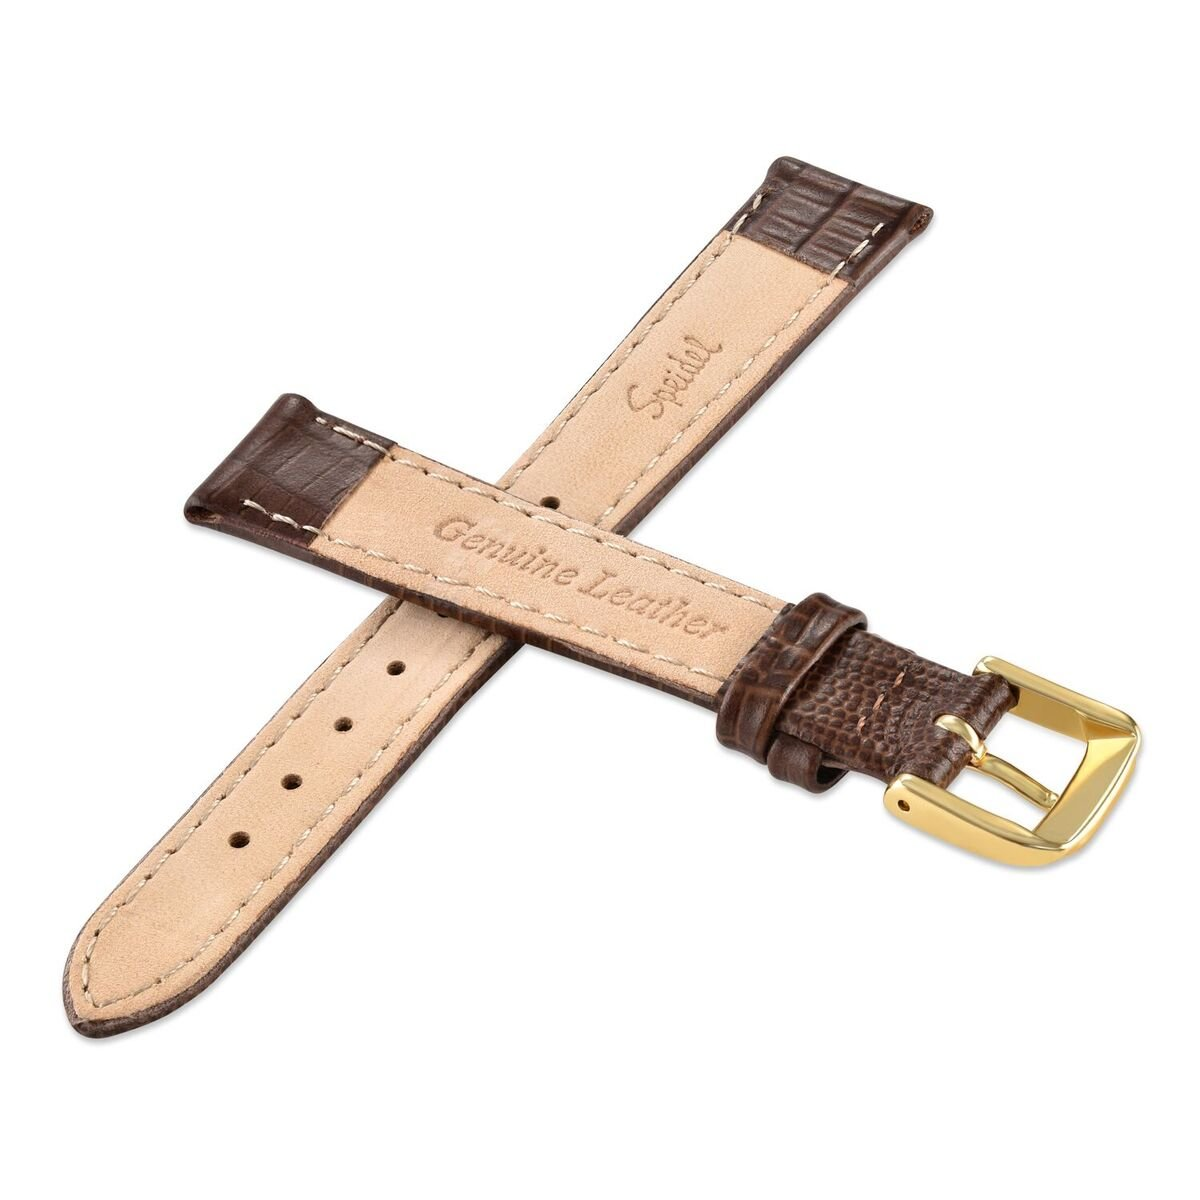 Speidel Genuine Leather Watch Band 14mm-Brown Padded Gator Lizard Replacement Strap with Tone on Tone Stitching, Stainless Steel Metal Buckle Clasp, Watchband Fits Most Watch Brands by Speidel (Image #3)